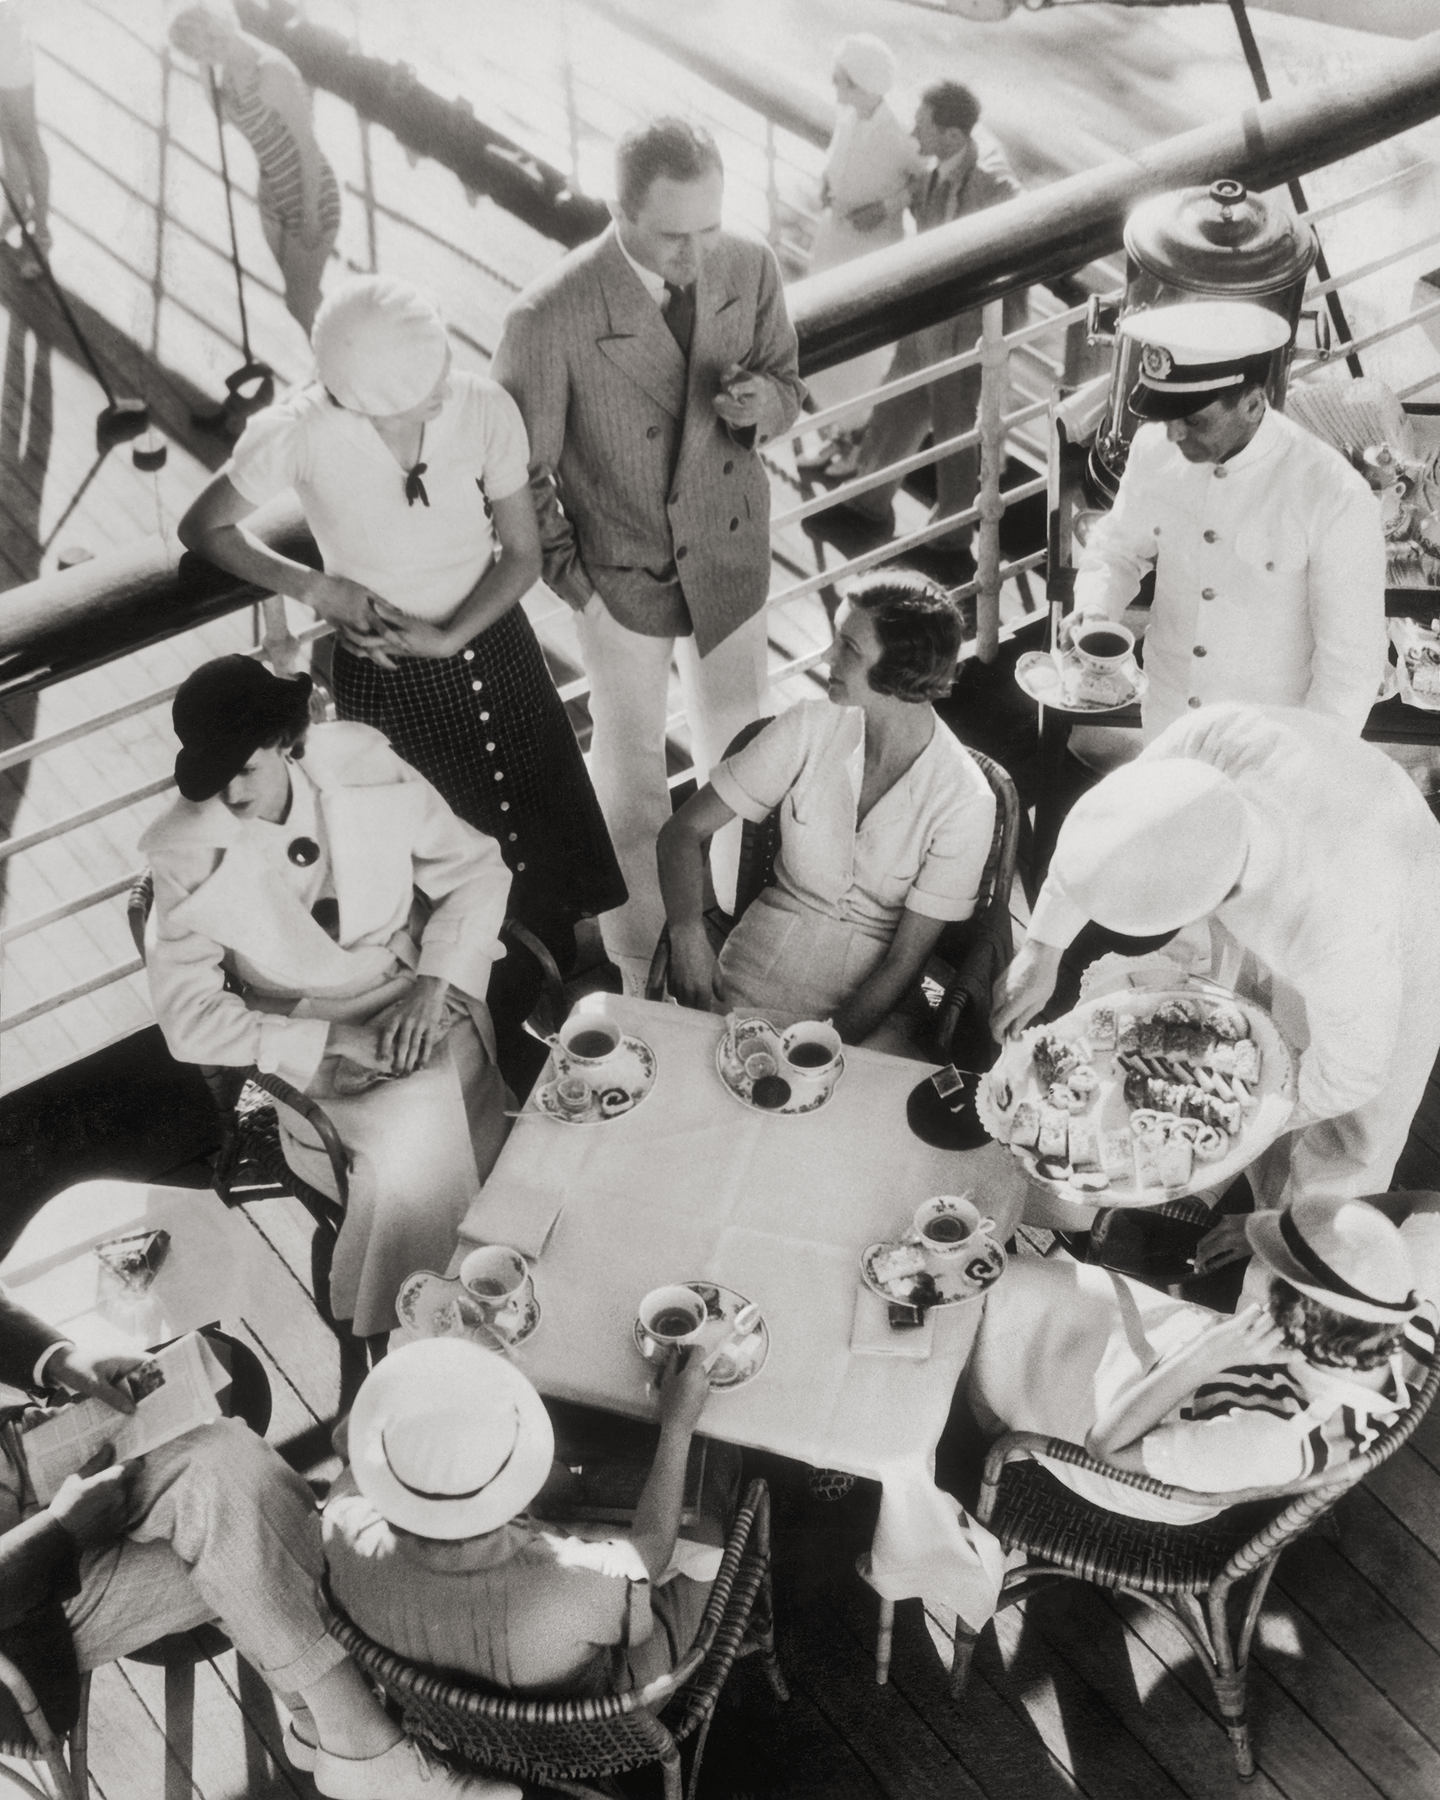 High Tea On The S.S. Lurline, Matson Lines Photograph, 1930s